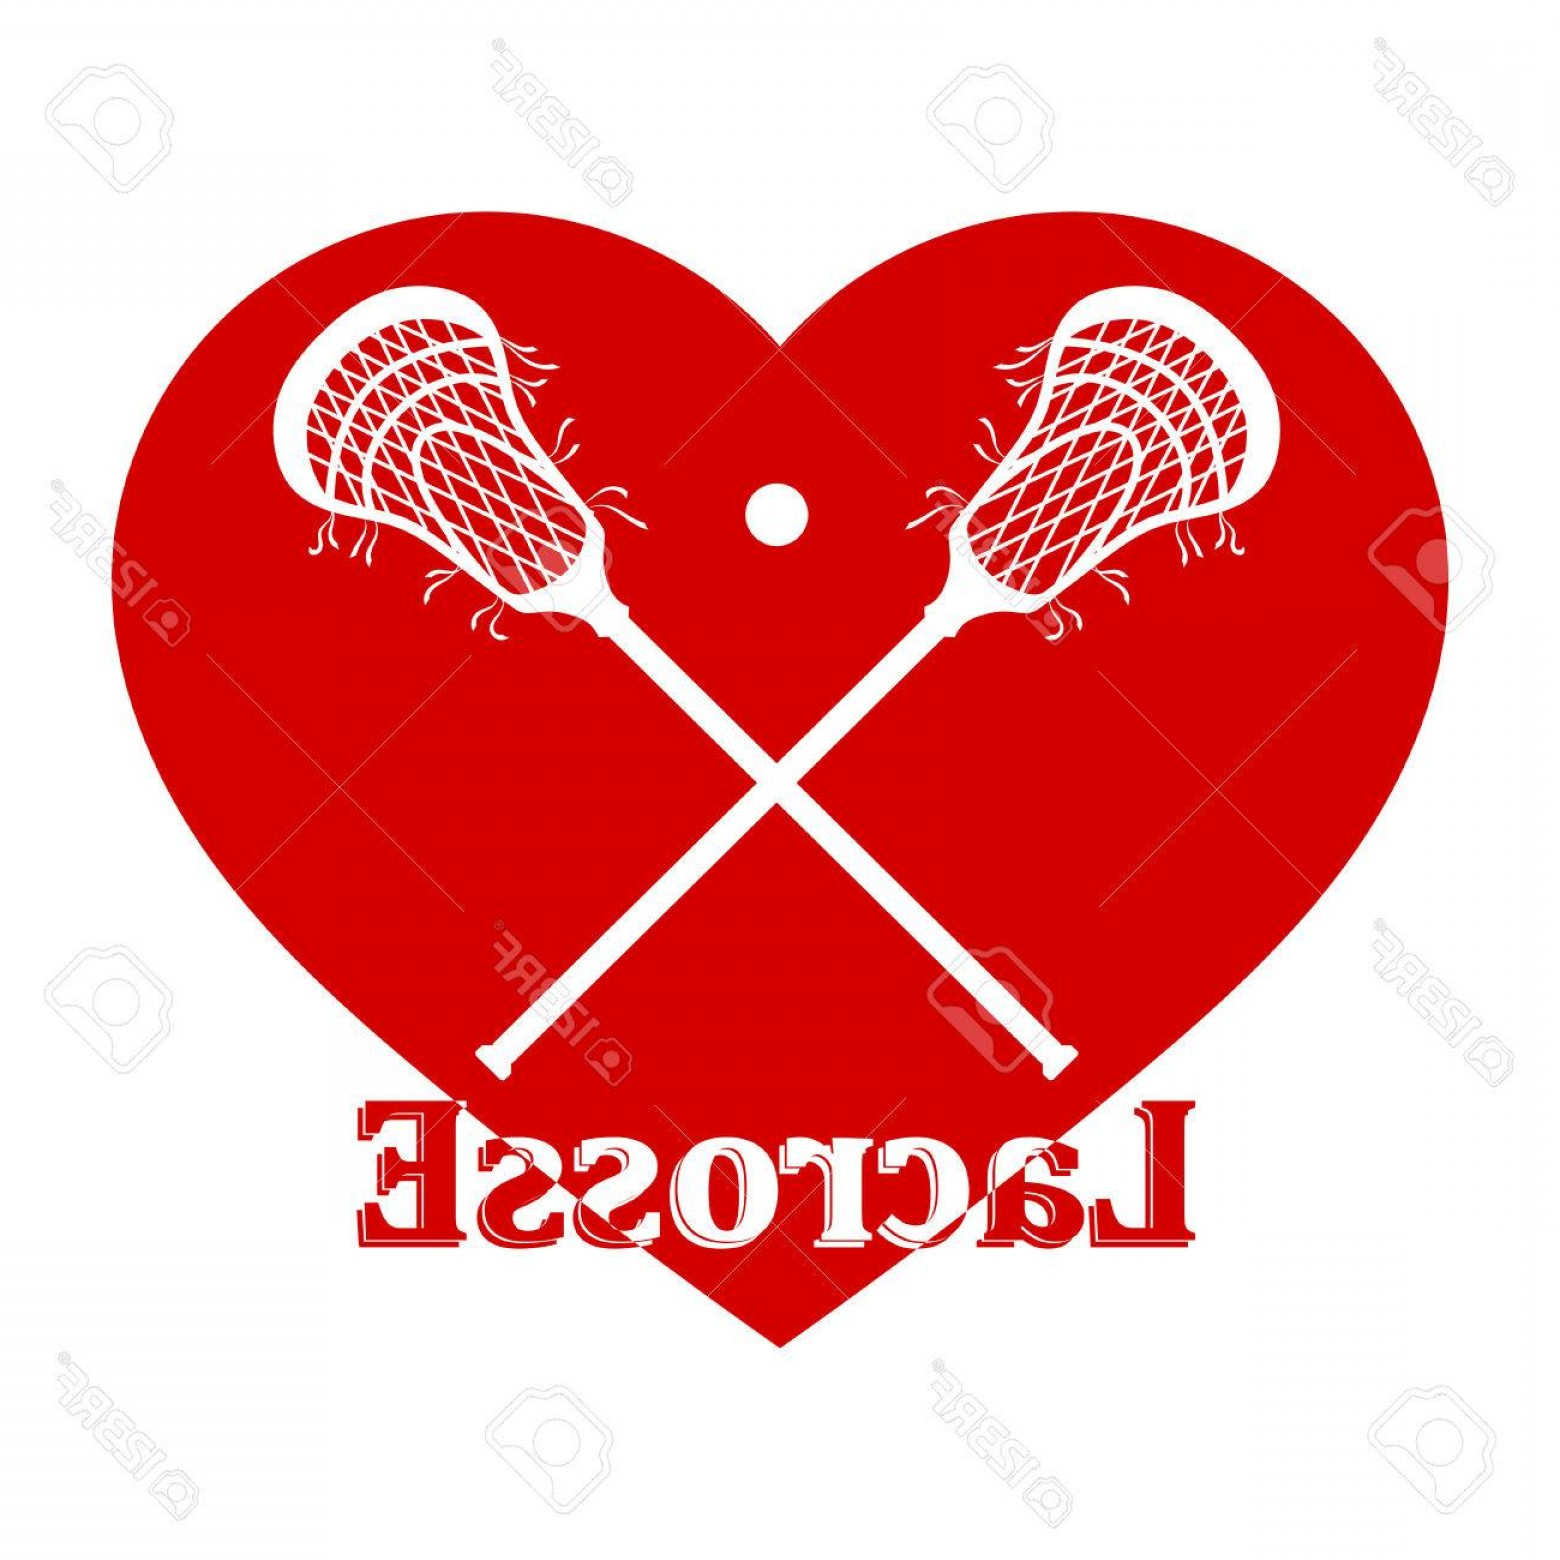 Lacrosse Stick Vector: Photostock Vector Crossed Lacrosse Stick Ball And Red Heart Vector Illustration